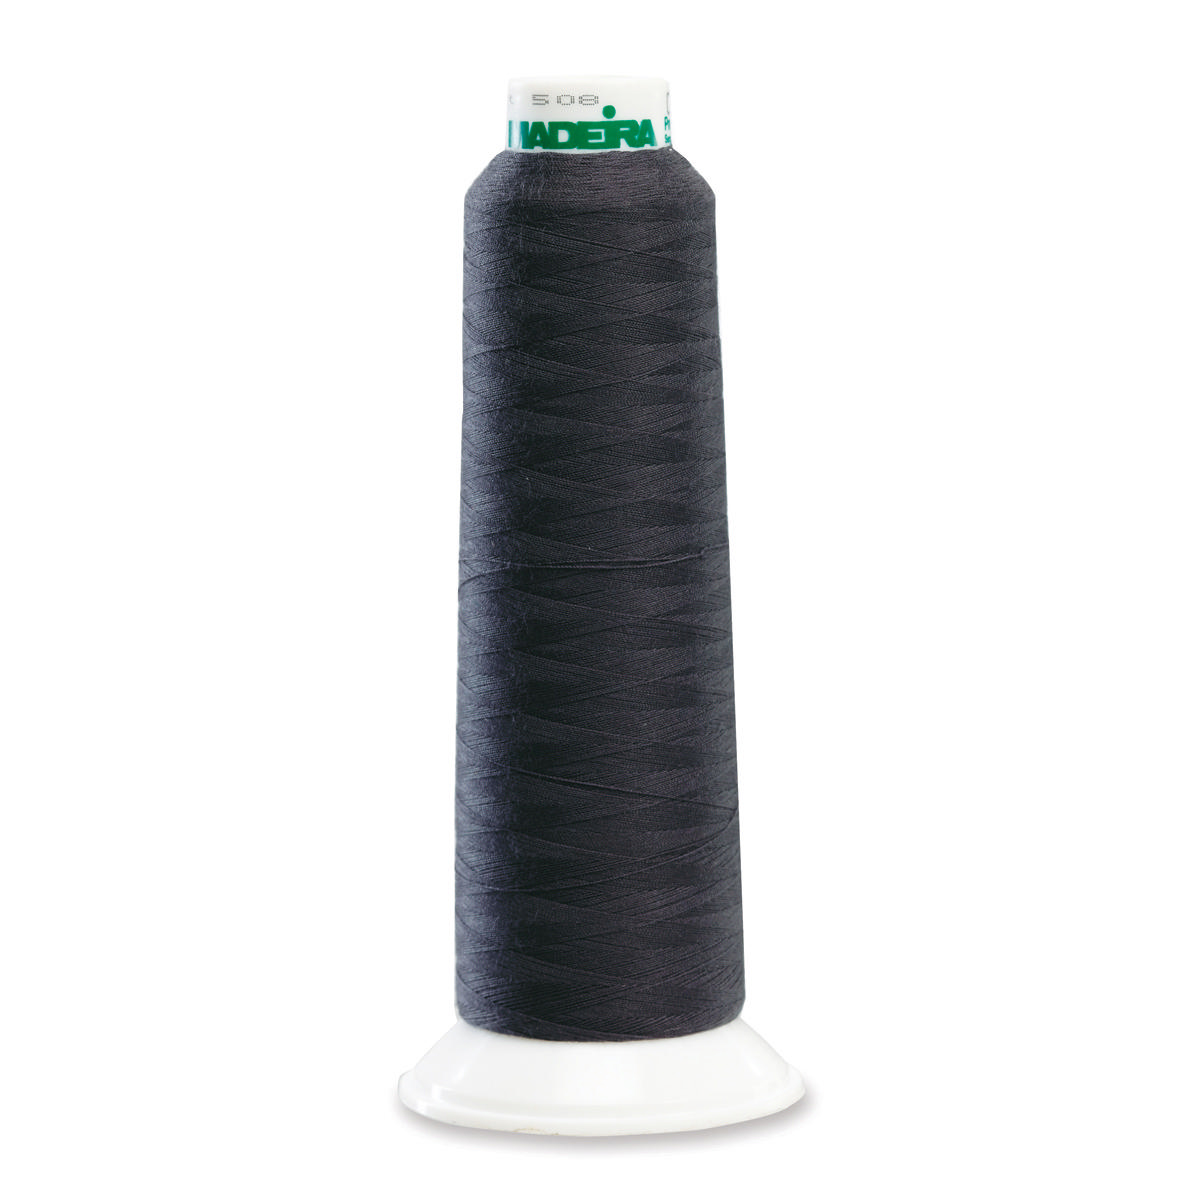 POLY CHARCOAL 2000YD SERGER THREAD MADEIRA AEROLOCK